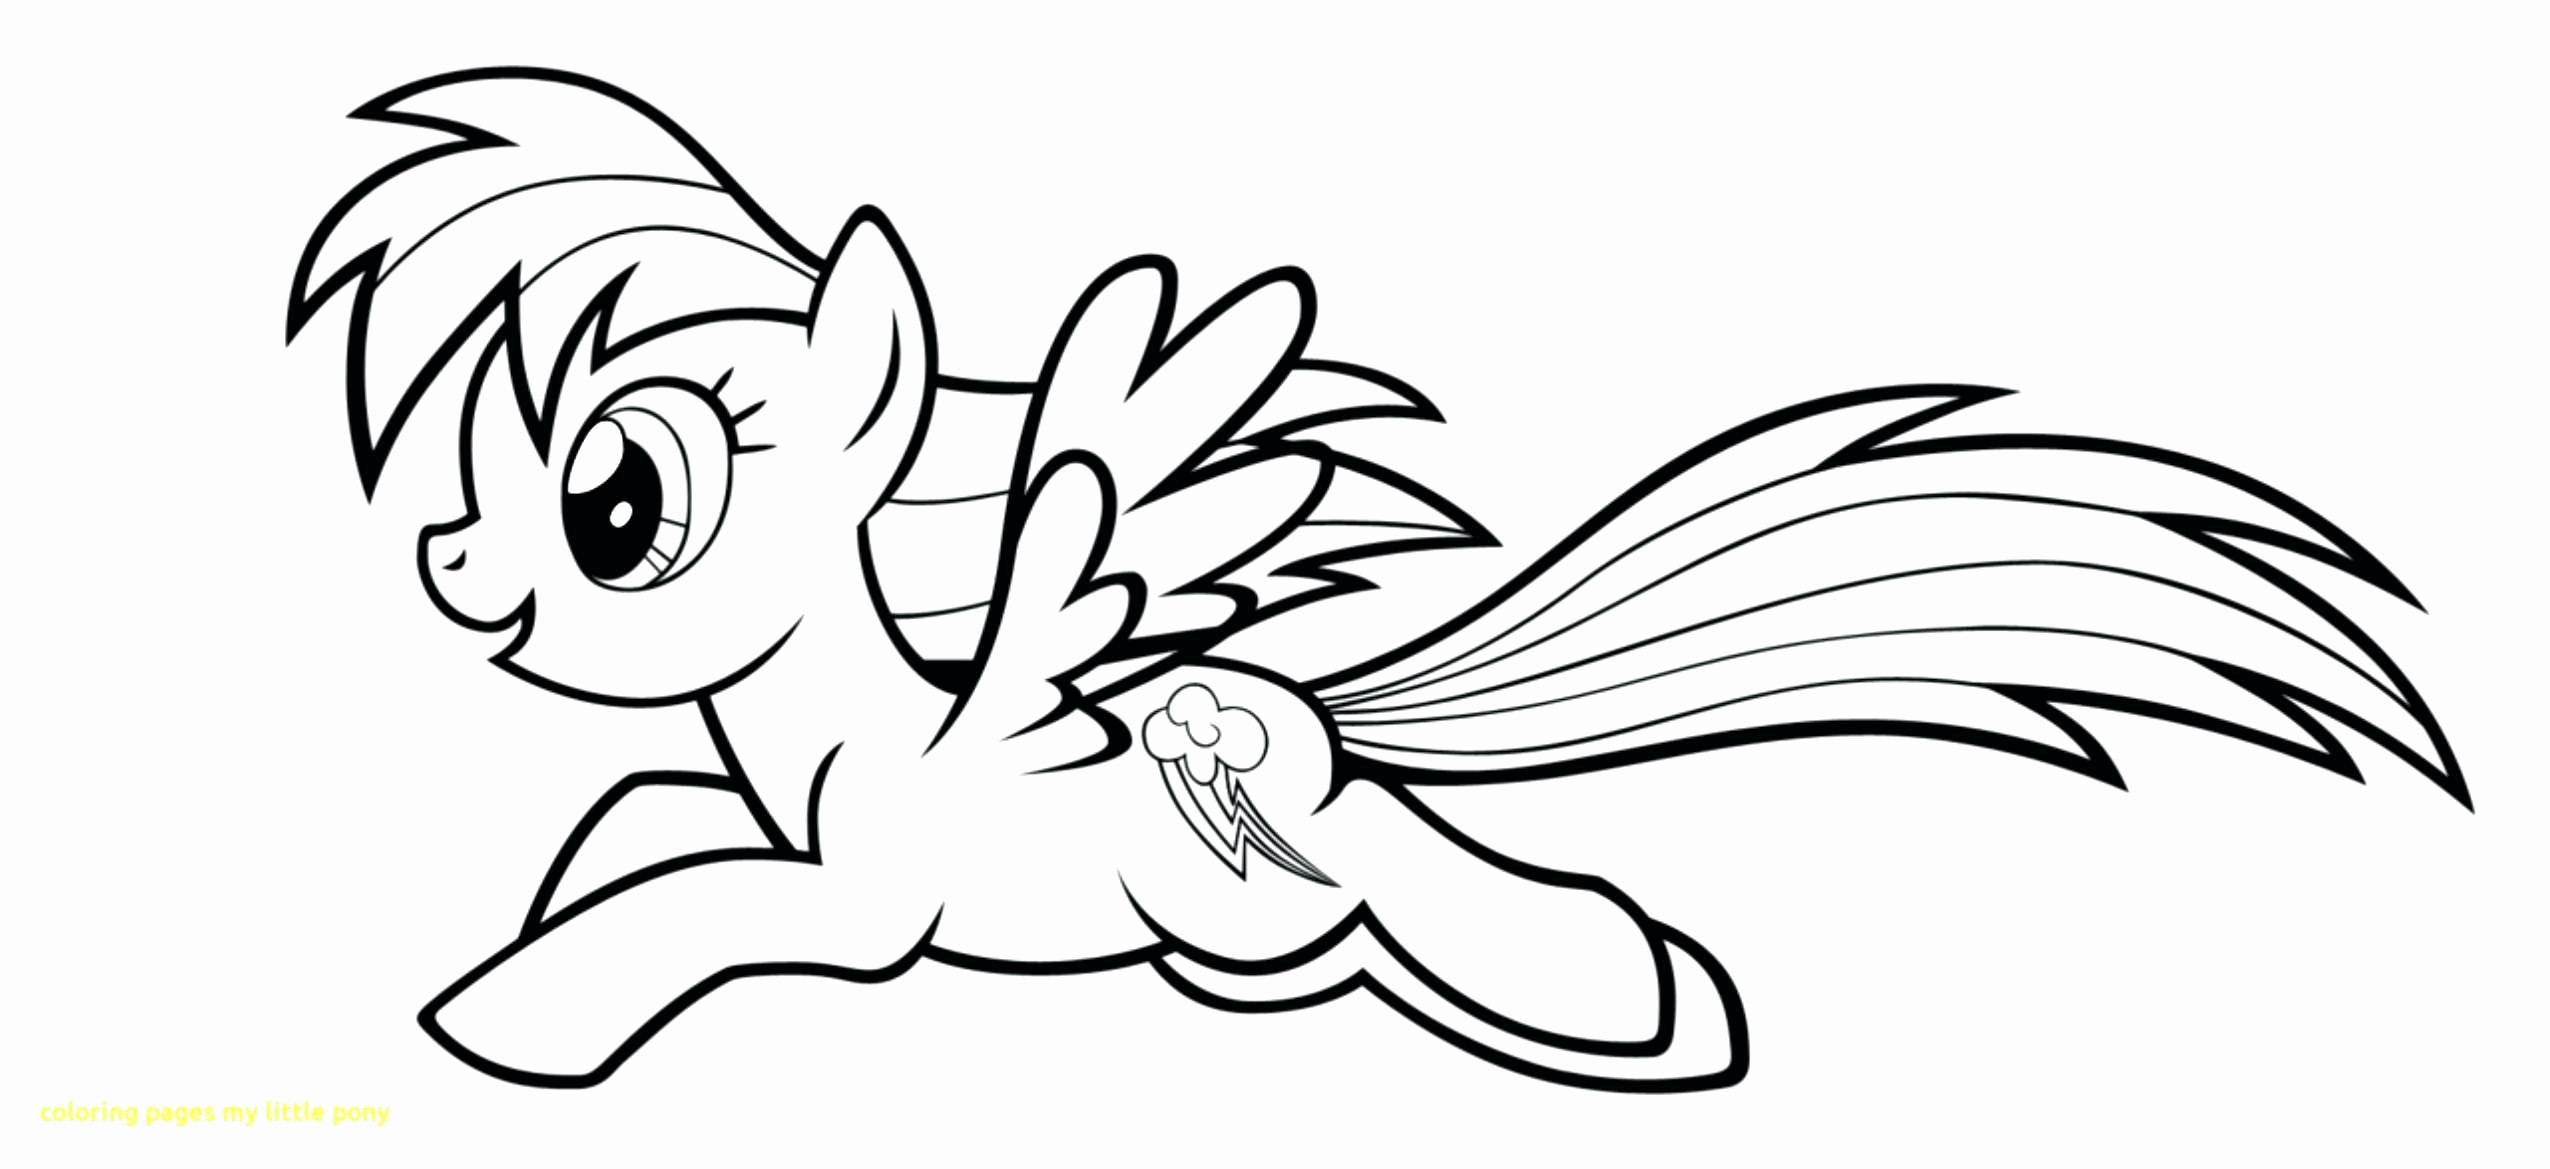 Ausmalbilder My Little Pony Equestria Das Beste Von Best Little Pony Coloring Pages Coloring Pages Frisch Ausmalbilder Fotos